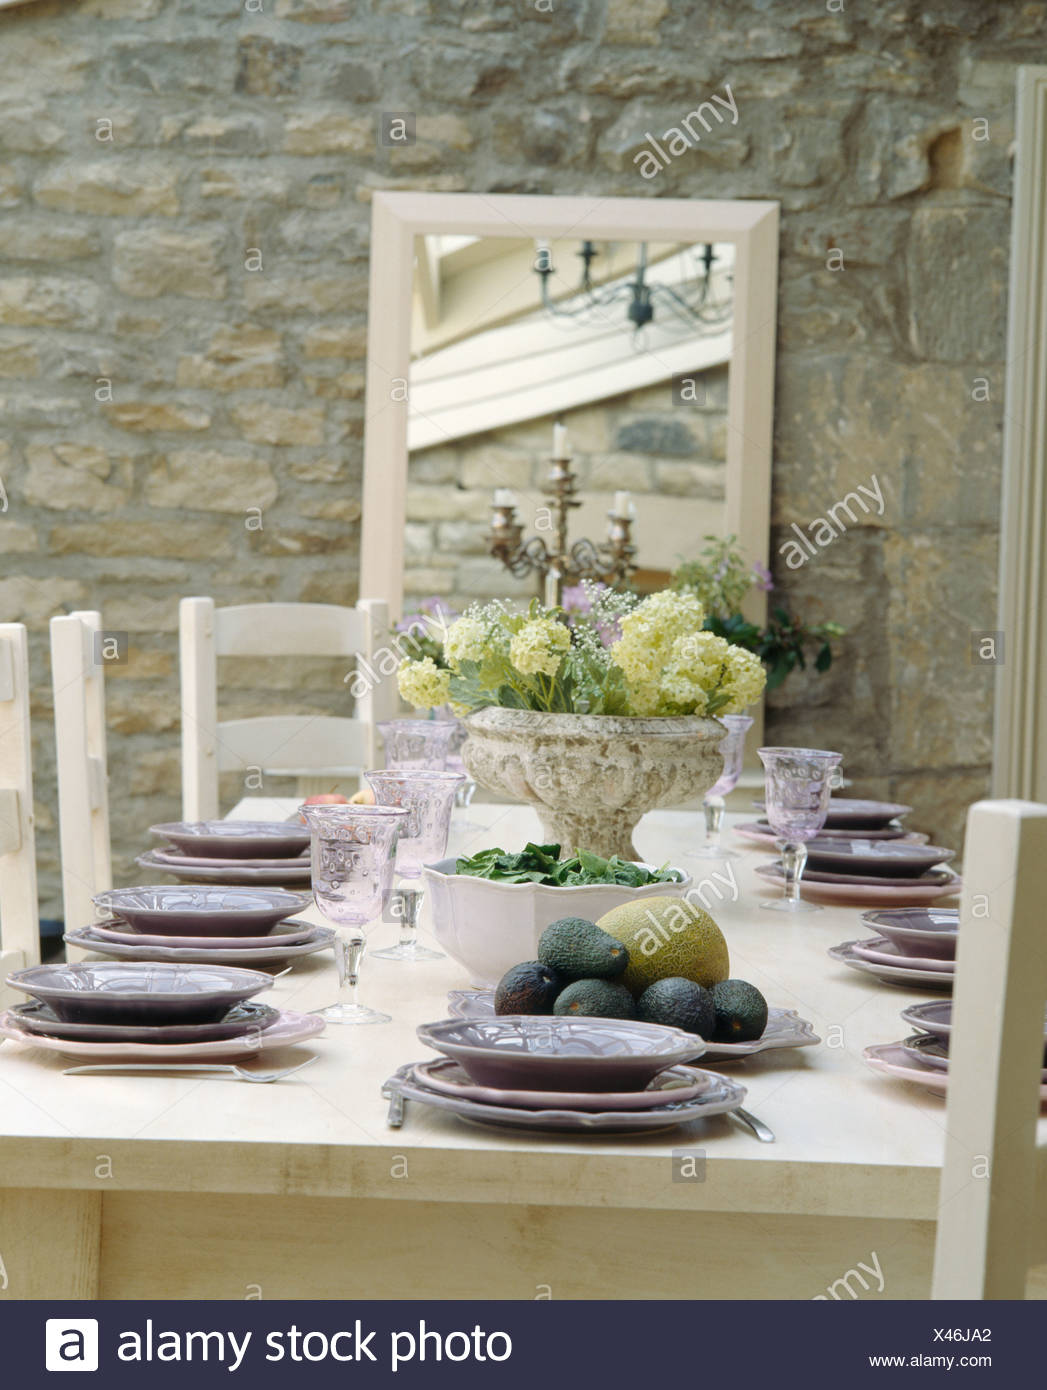 Mauve Plates On Cream Table Set For Lunch In Country Dining Room With Cream Framed Mirror On Exposed Stone Wall Stock Photo Alamy